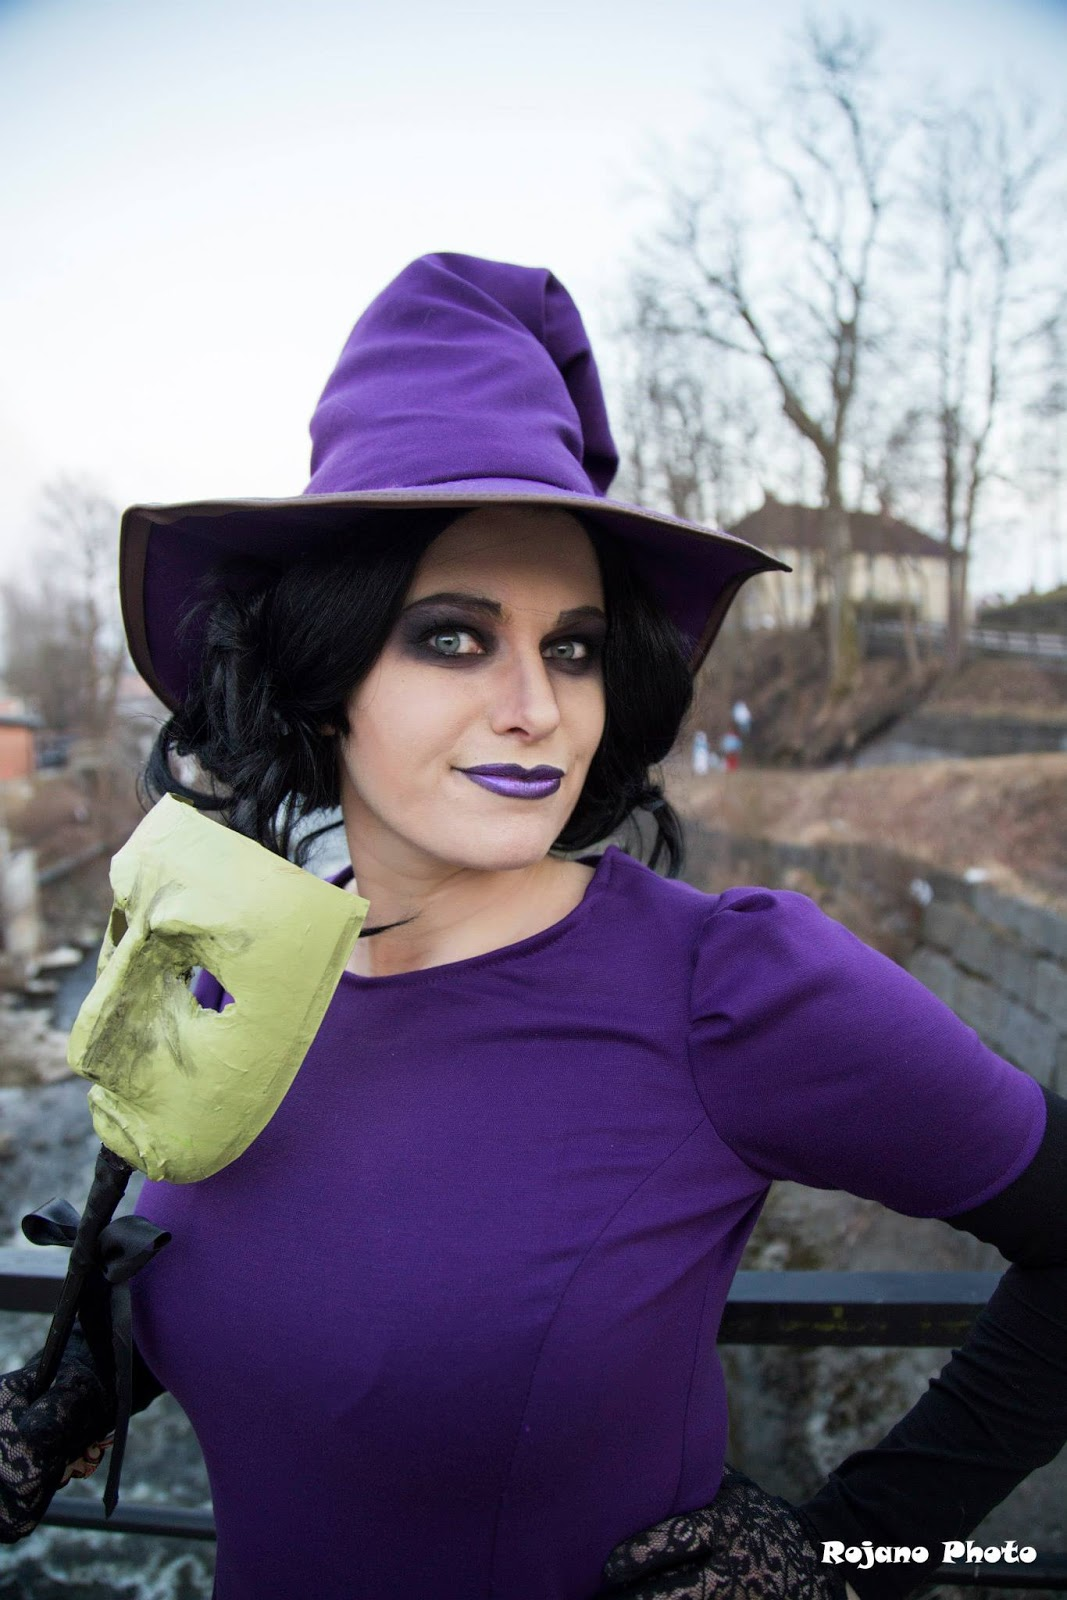 Chrix Design: Shock cosplay from The Nightmare Before Christmas